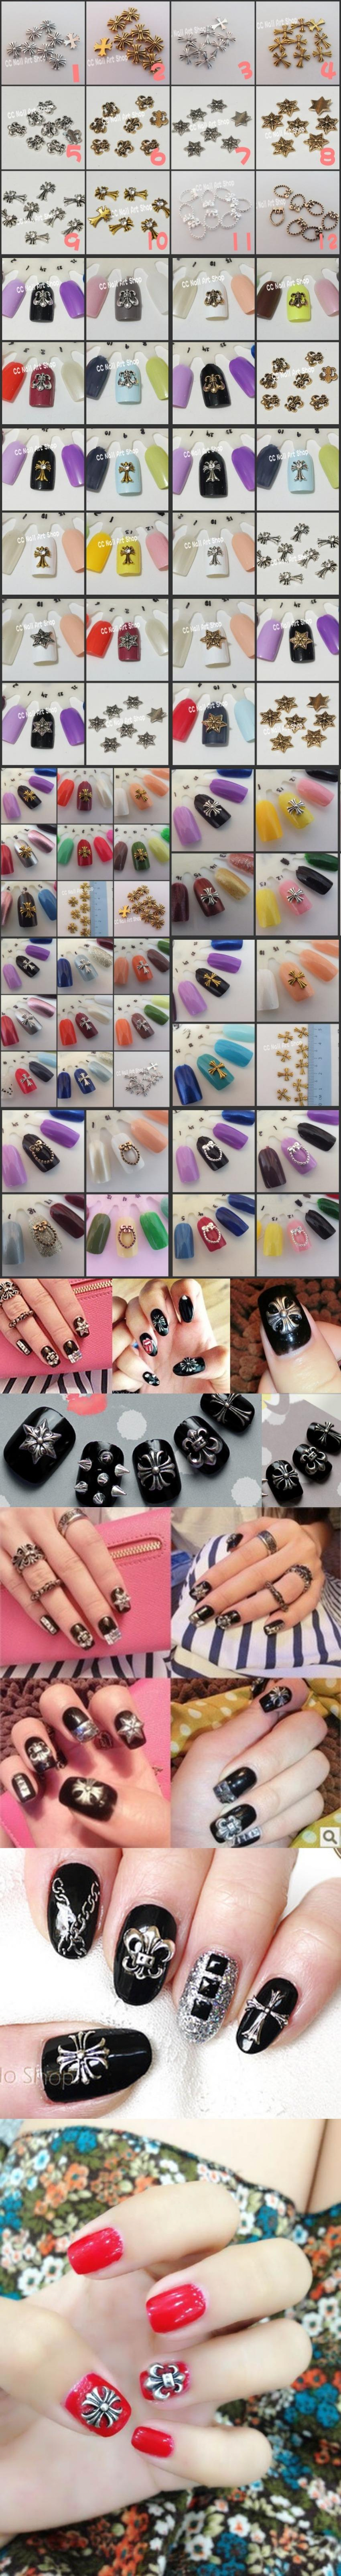 10pcs Quality Nail Art Chrome Heart (can mix) Decoration Value Set New